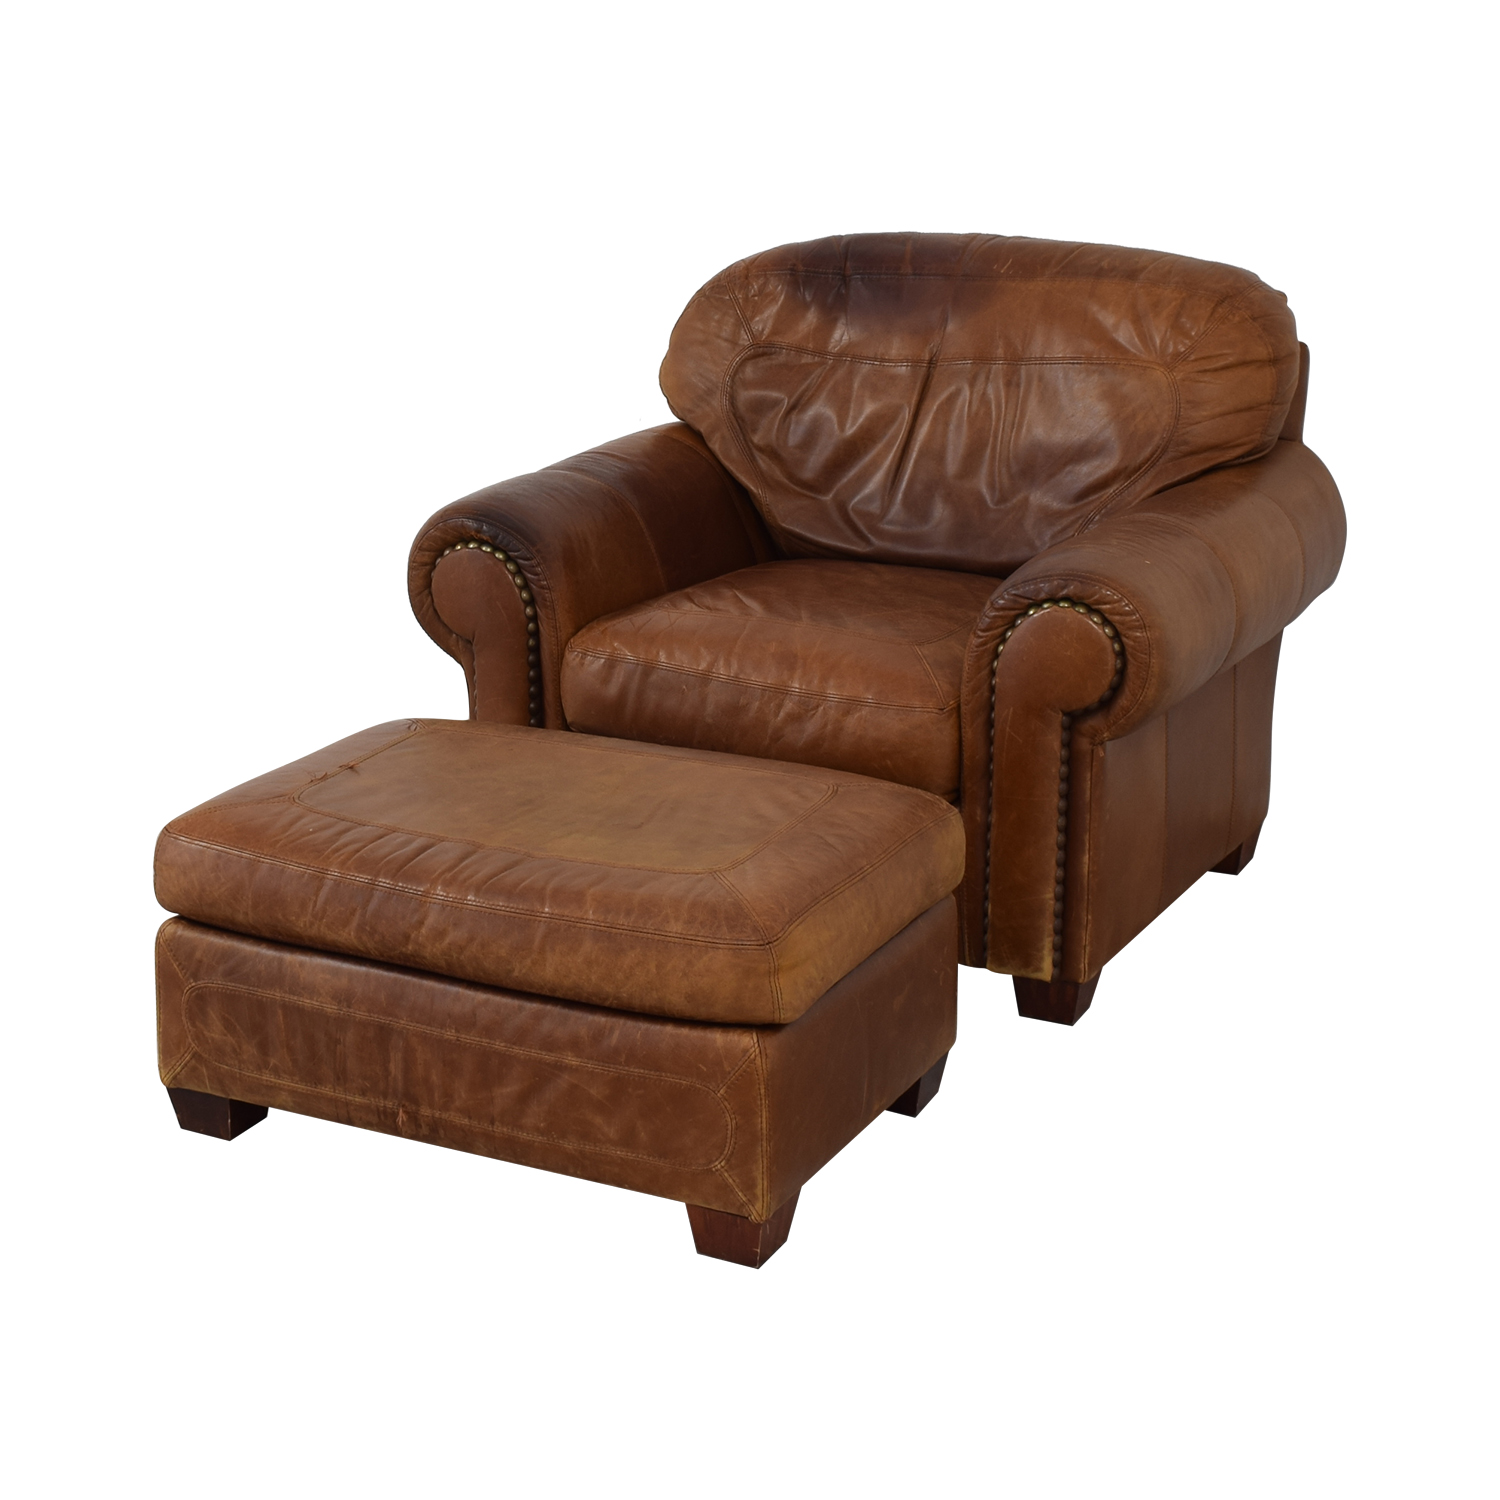 Stickley Cibola Brown Leather Armchair and Ottoman / Accent Chairs